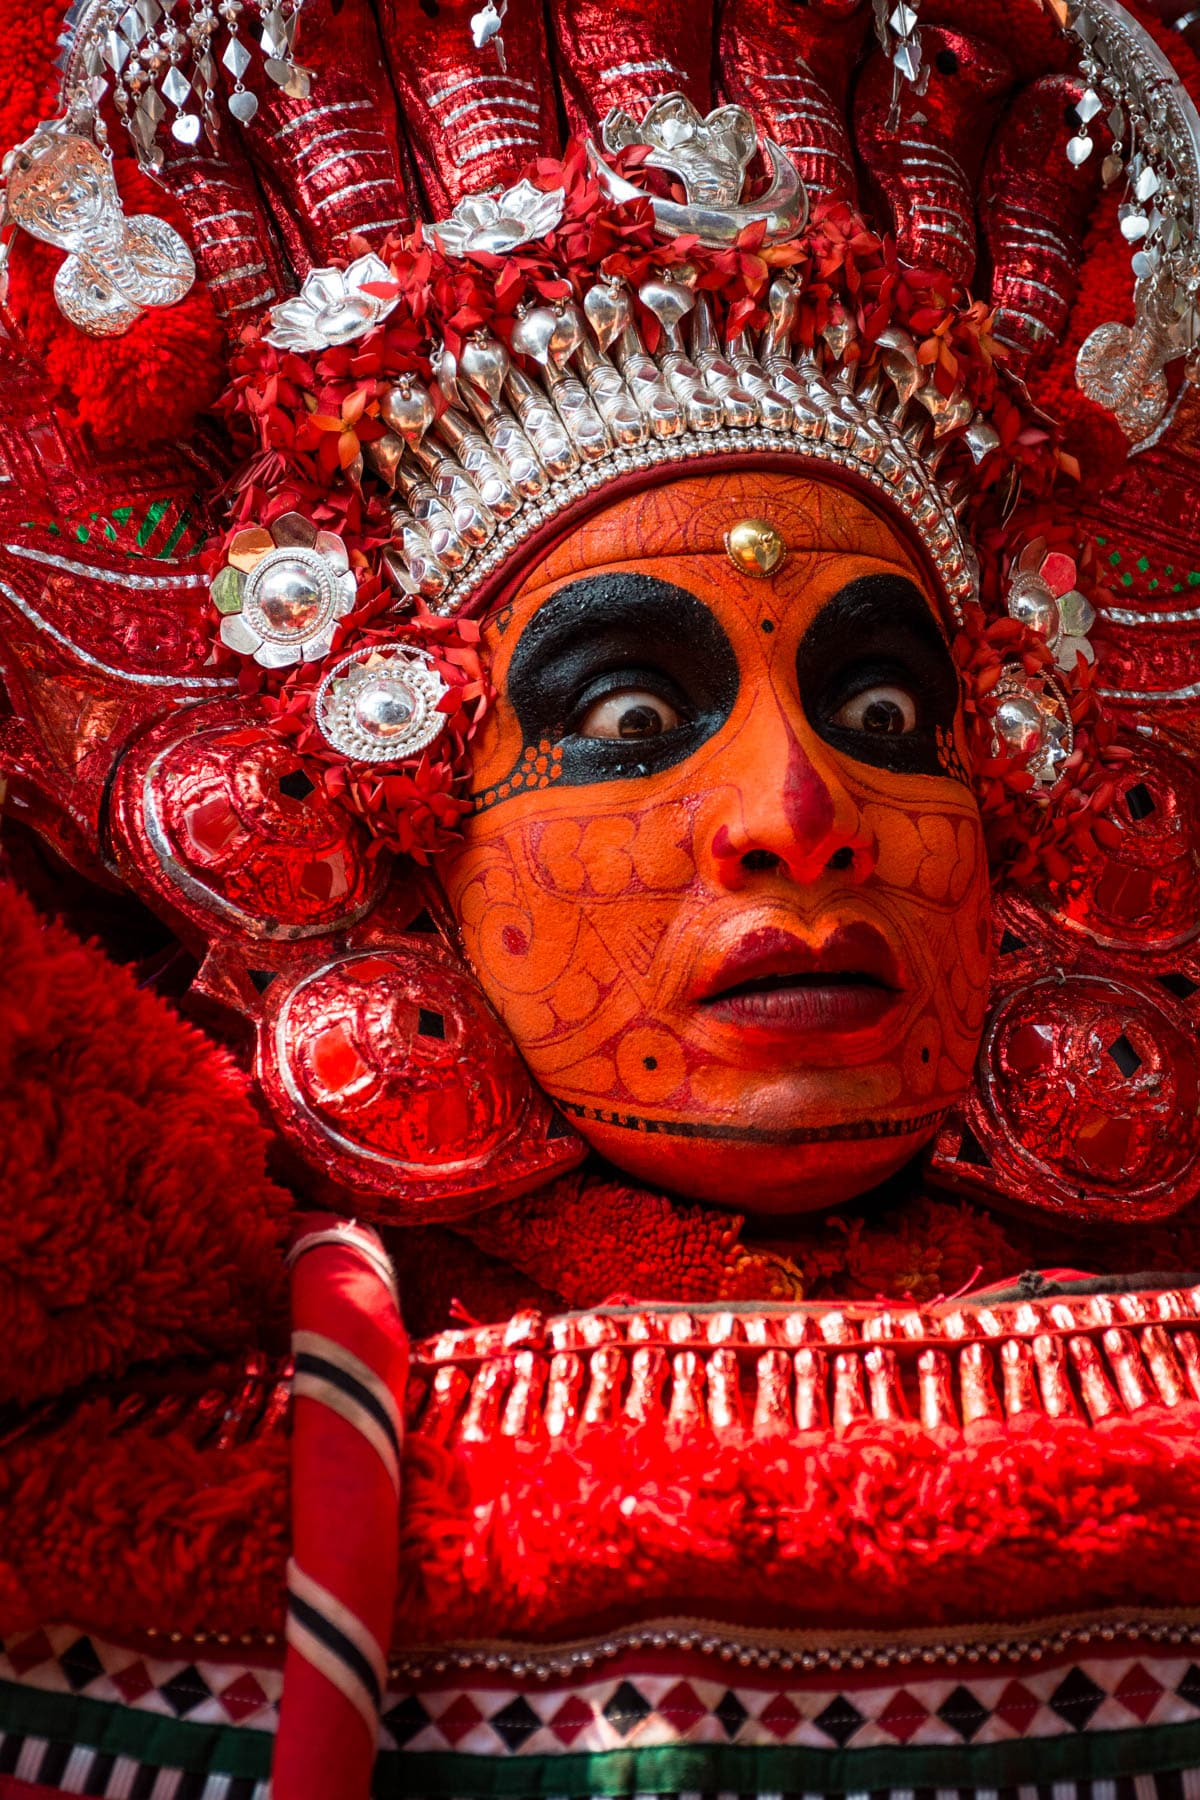 Portrait of a Theyyam dancer in full face paint during Theyyam season in Kannur, Kerala state, India.